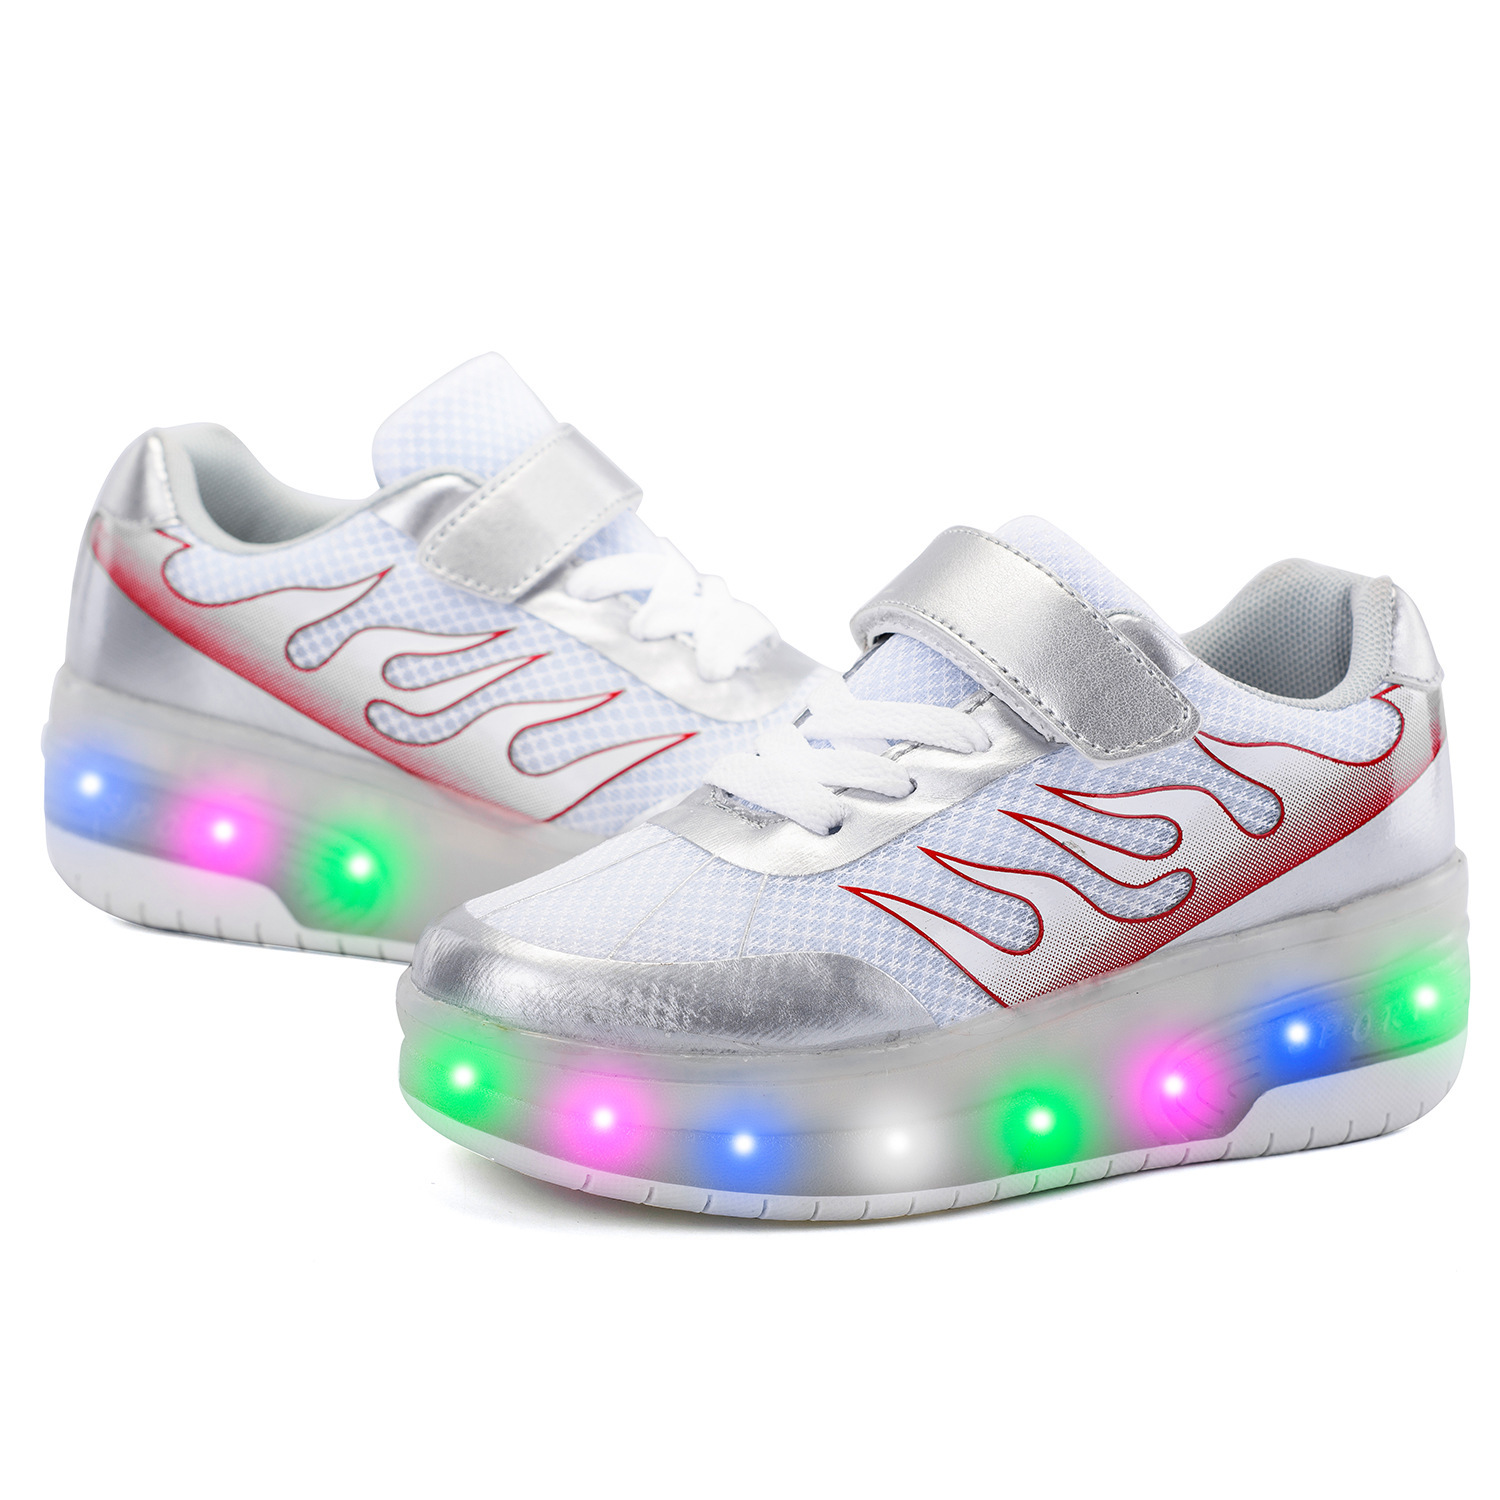 New Style Glowing Shoes Men and Women Children's Youth Pulley Shine Double Wheel Skates Single LED Roller Skates Shoes цены онлайн